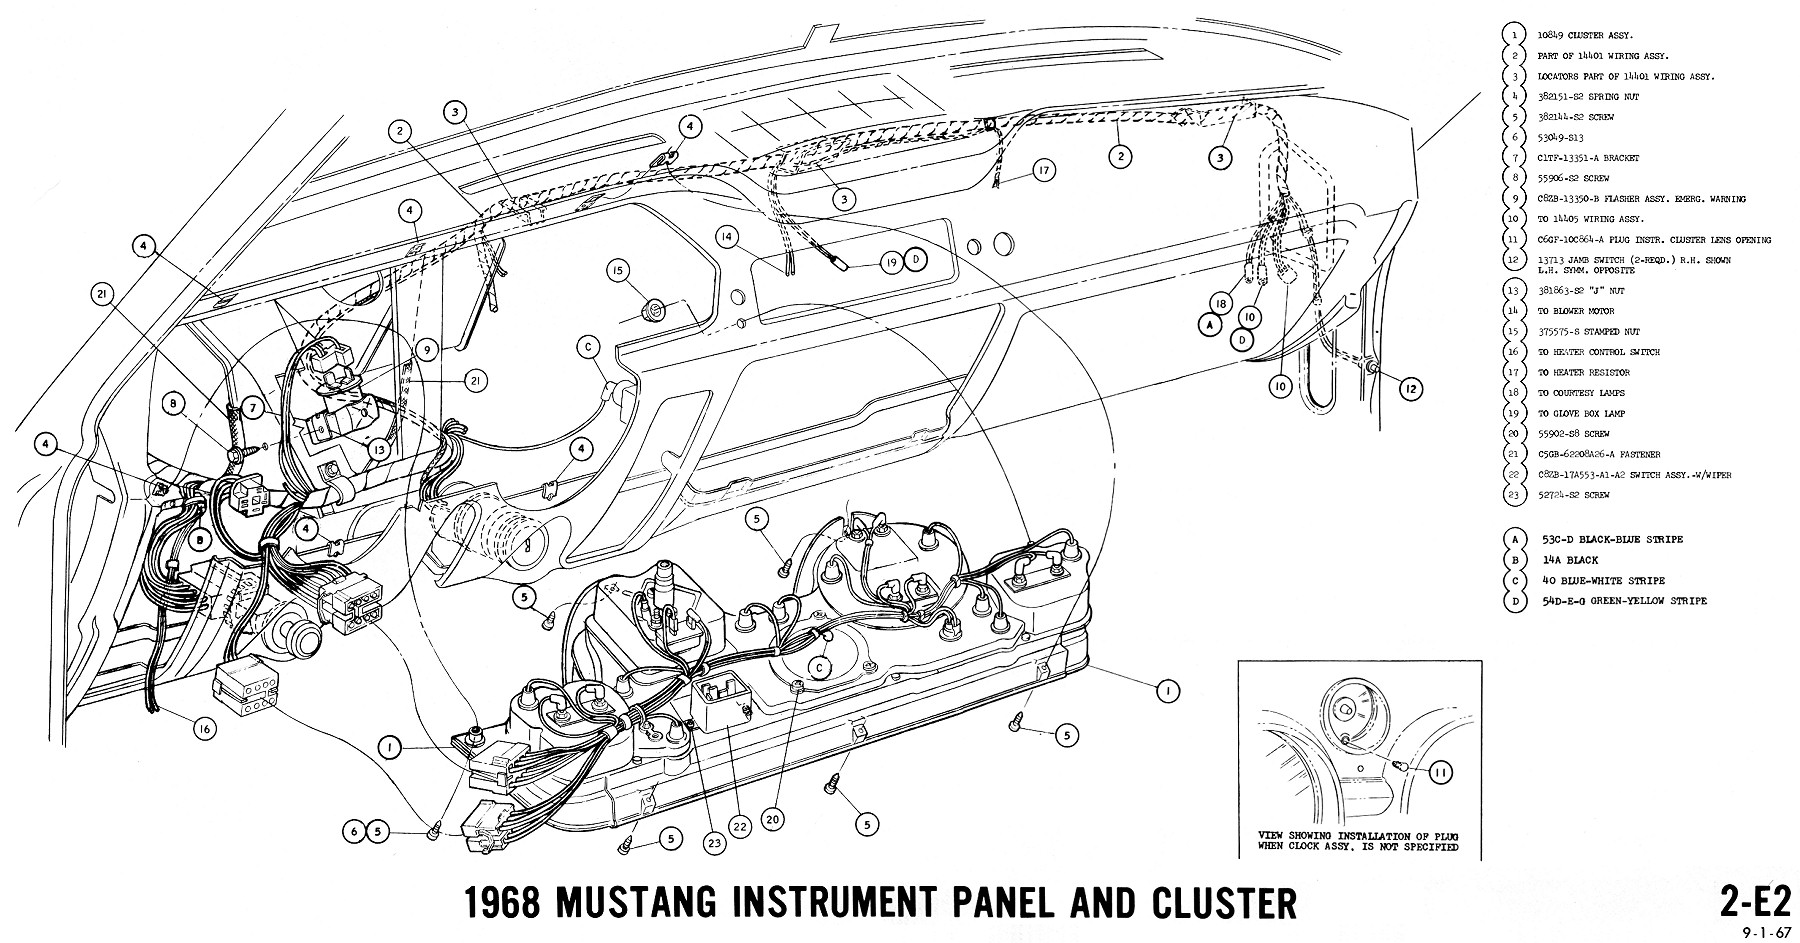 1968 mustang wiring diagrams evolving software instrument cluster asfbconference2016 Image collections